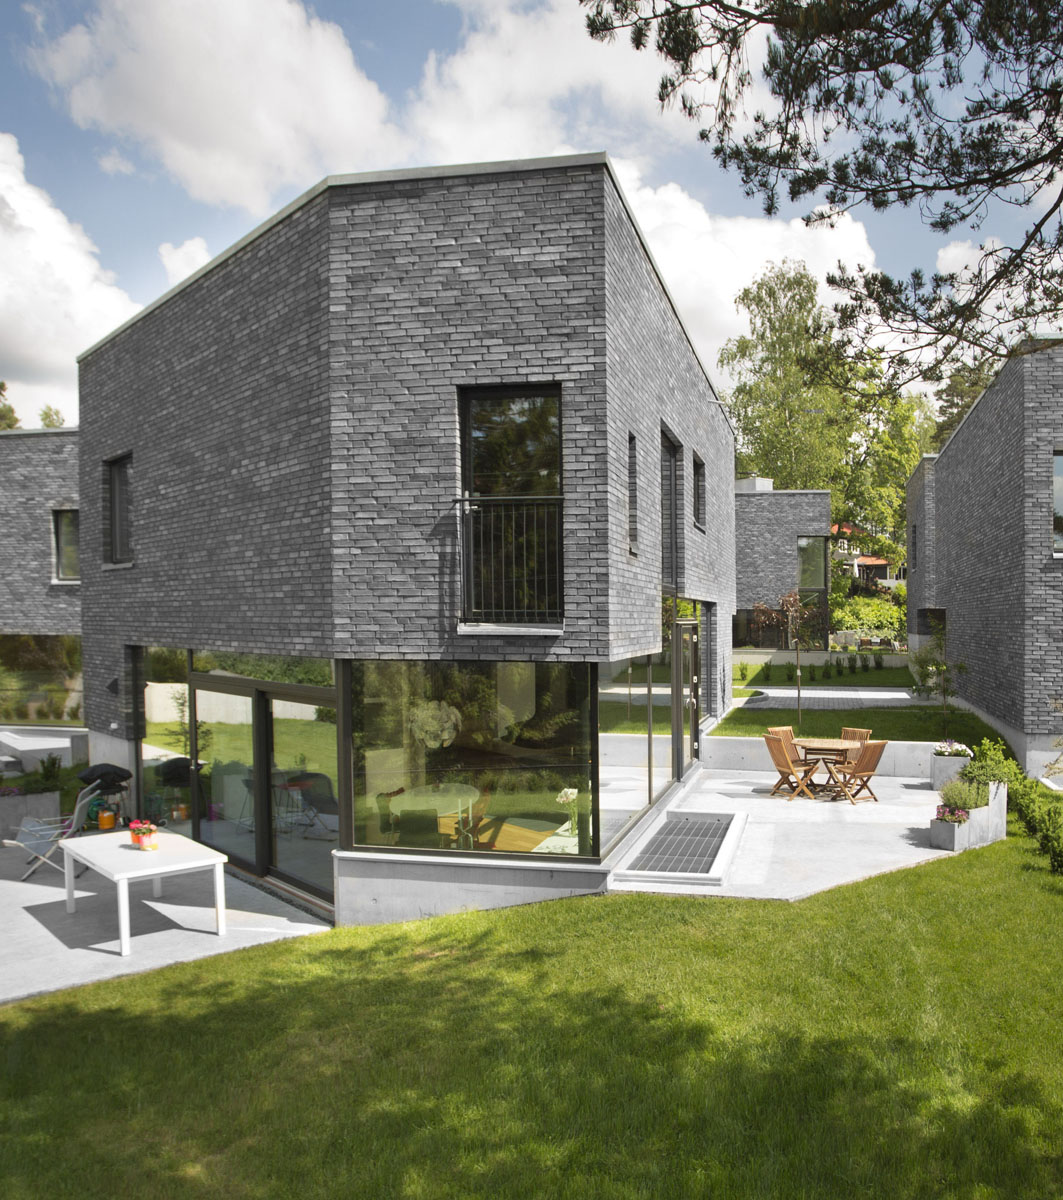 2012 Award Winning House Plans: Award-Winning Housing Project In Oslo Organized Around A